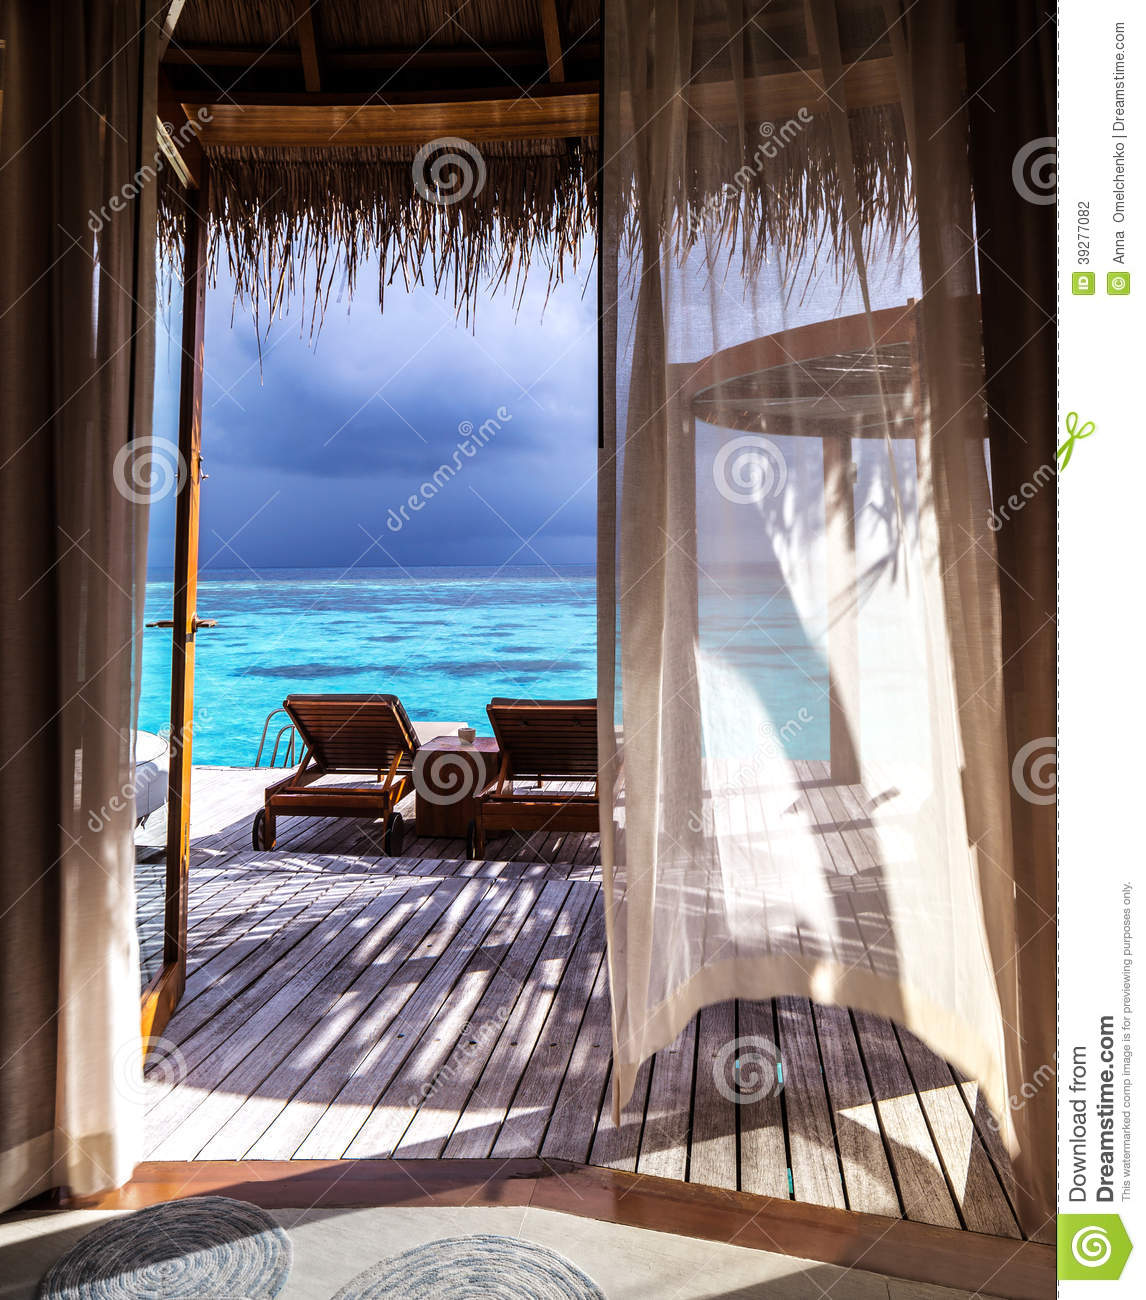 Luxury honeymoon stock photo image of beach holiday for Luxury places